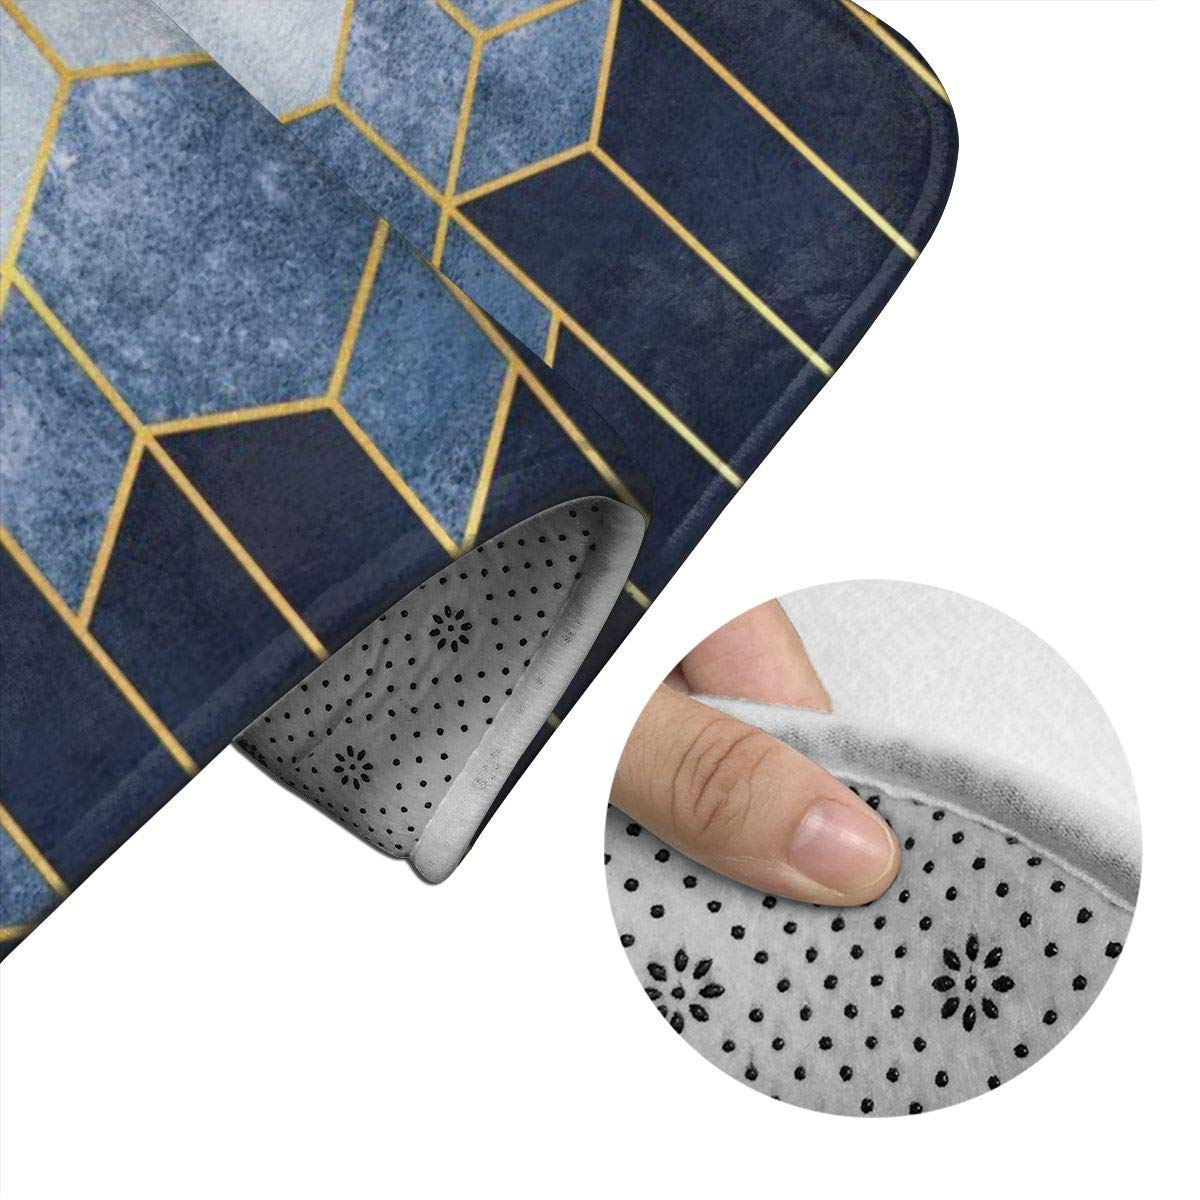 Yunshm Geometric Abstraction of Hexagons On A Blue Gold Elements Bathroom Mats U-Shaped Toilet Floor Rug Point Plastic Bottom Antiskid Pad Set of 2 Piece Customized